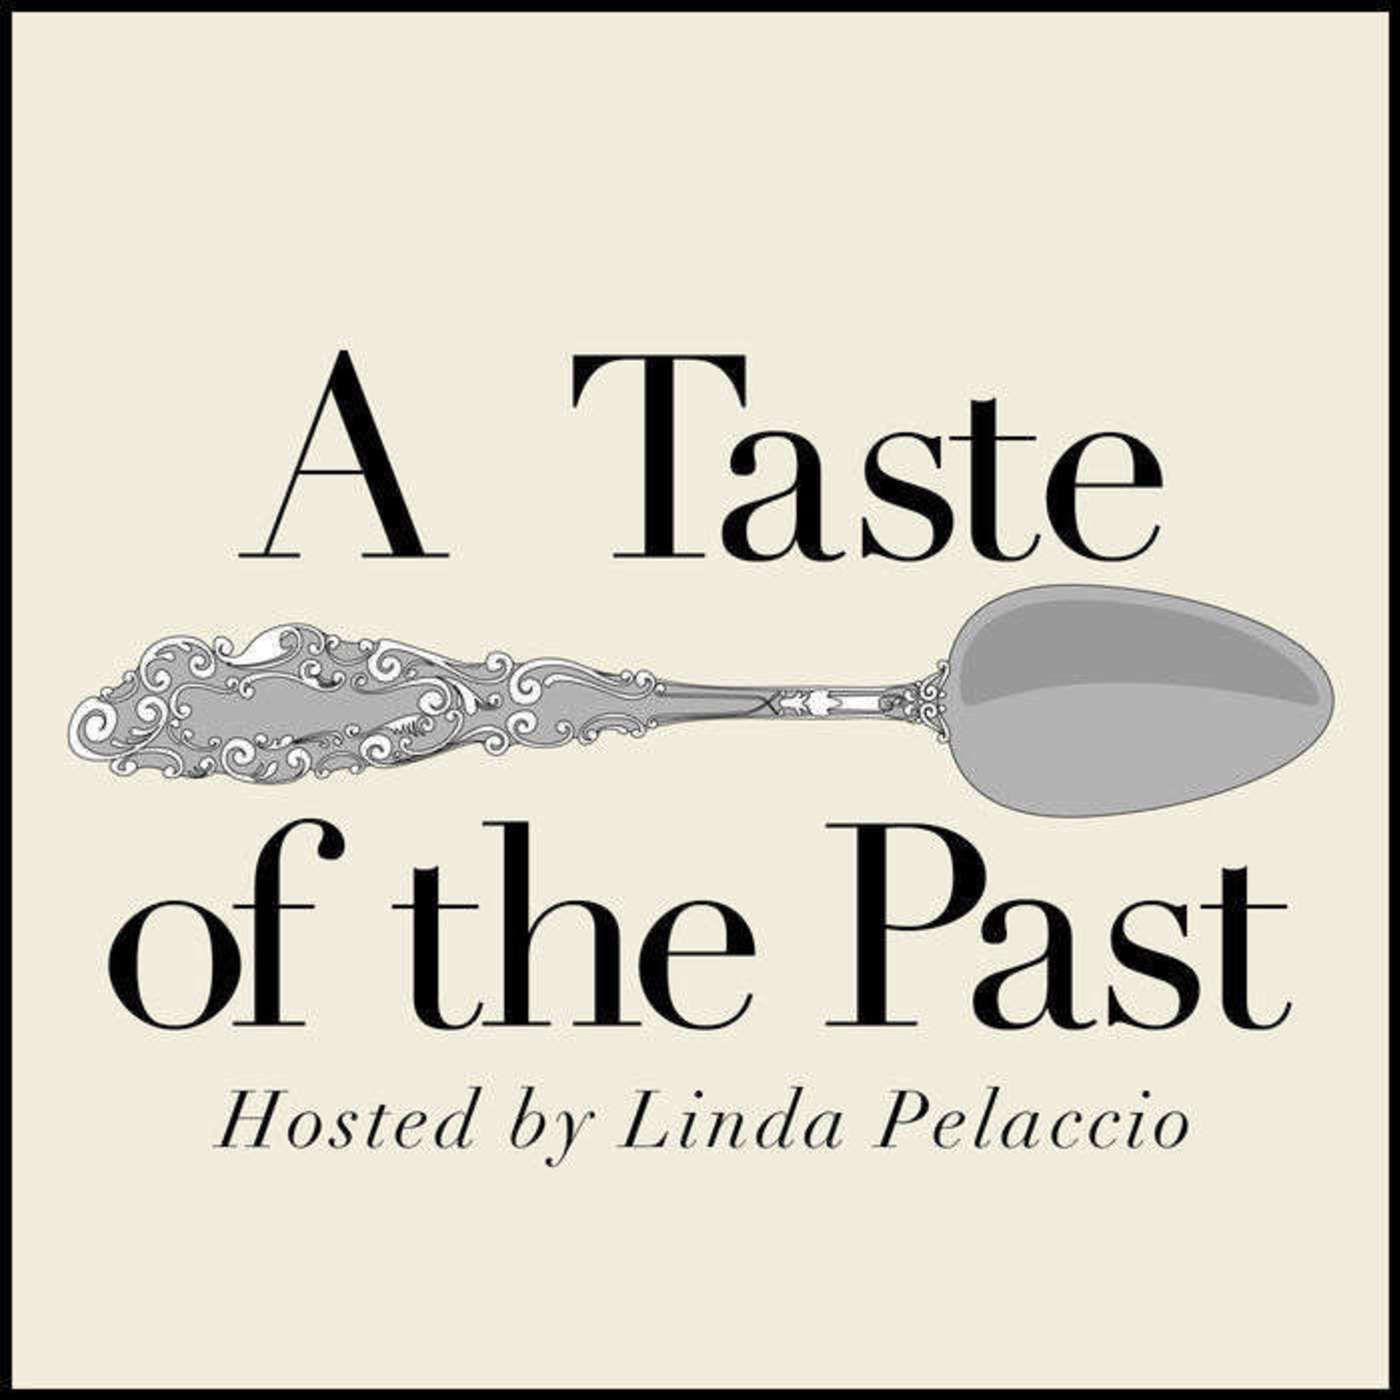 Episode 62: Ice Cream with Laura Weiss